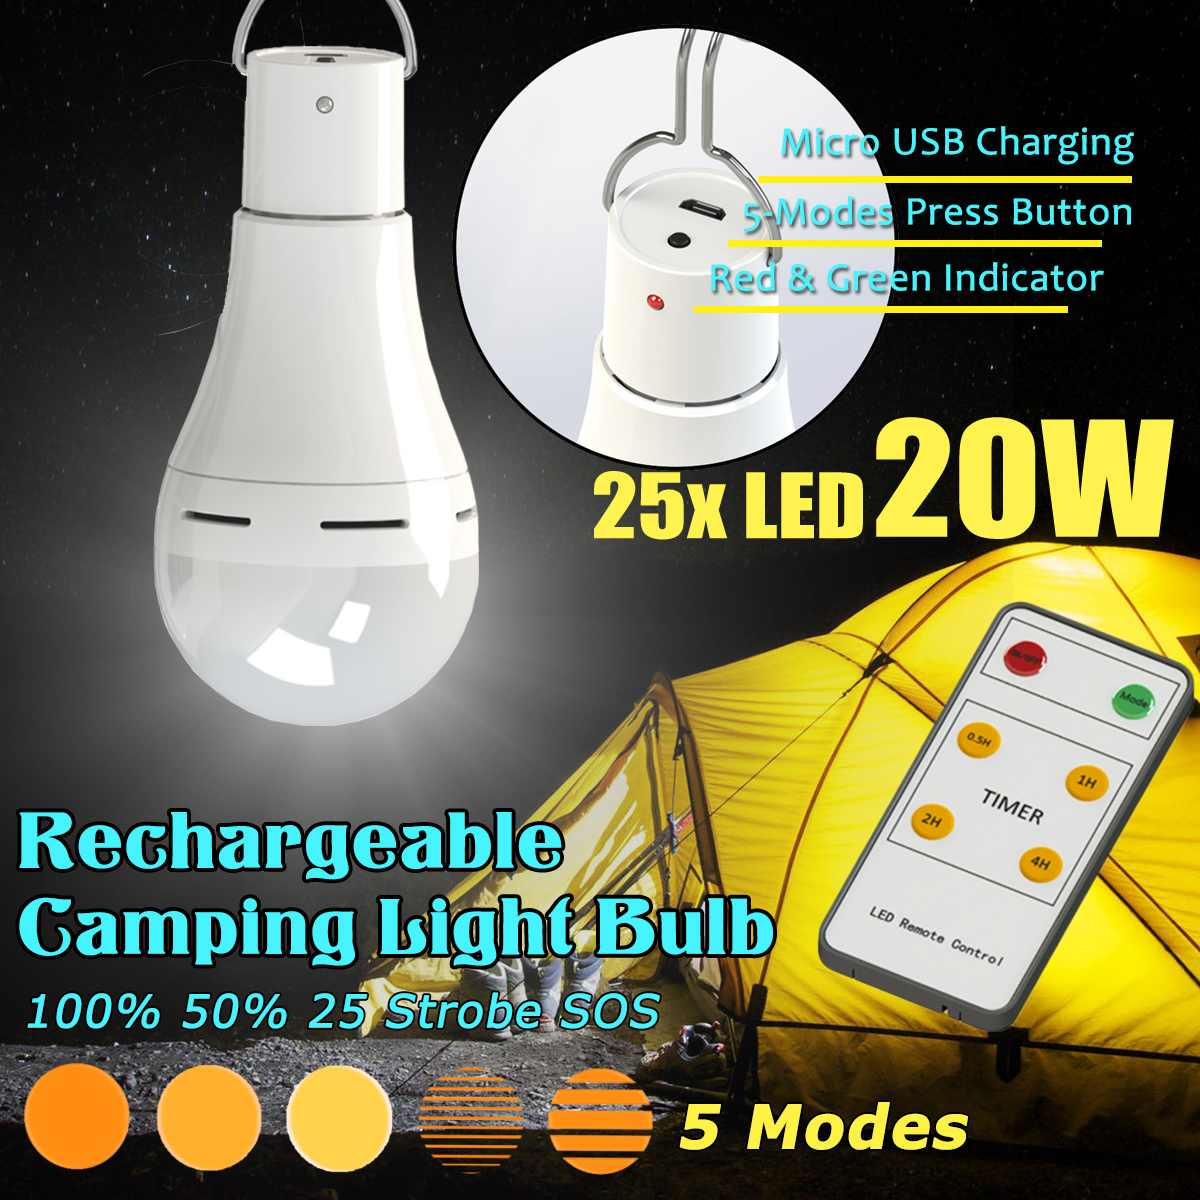 2pcs DC5V 20W Dimmable USB Charging Rechargeable Emergency Outdoor Tent Camping LED Light Bulb With 6Keys Remote Control